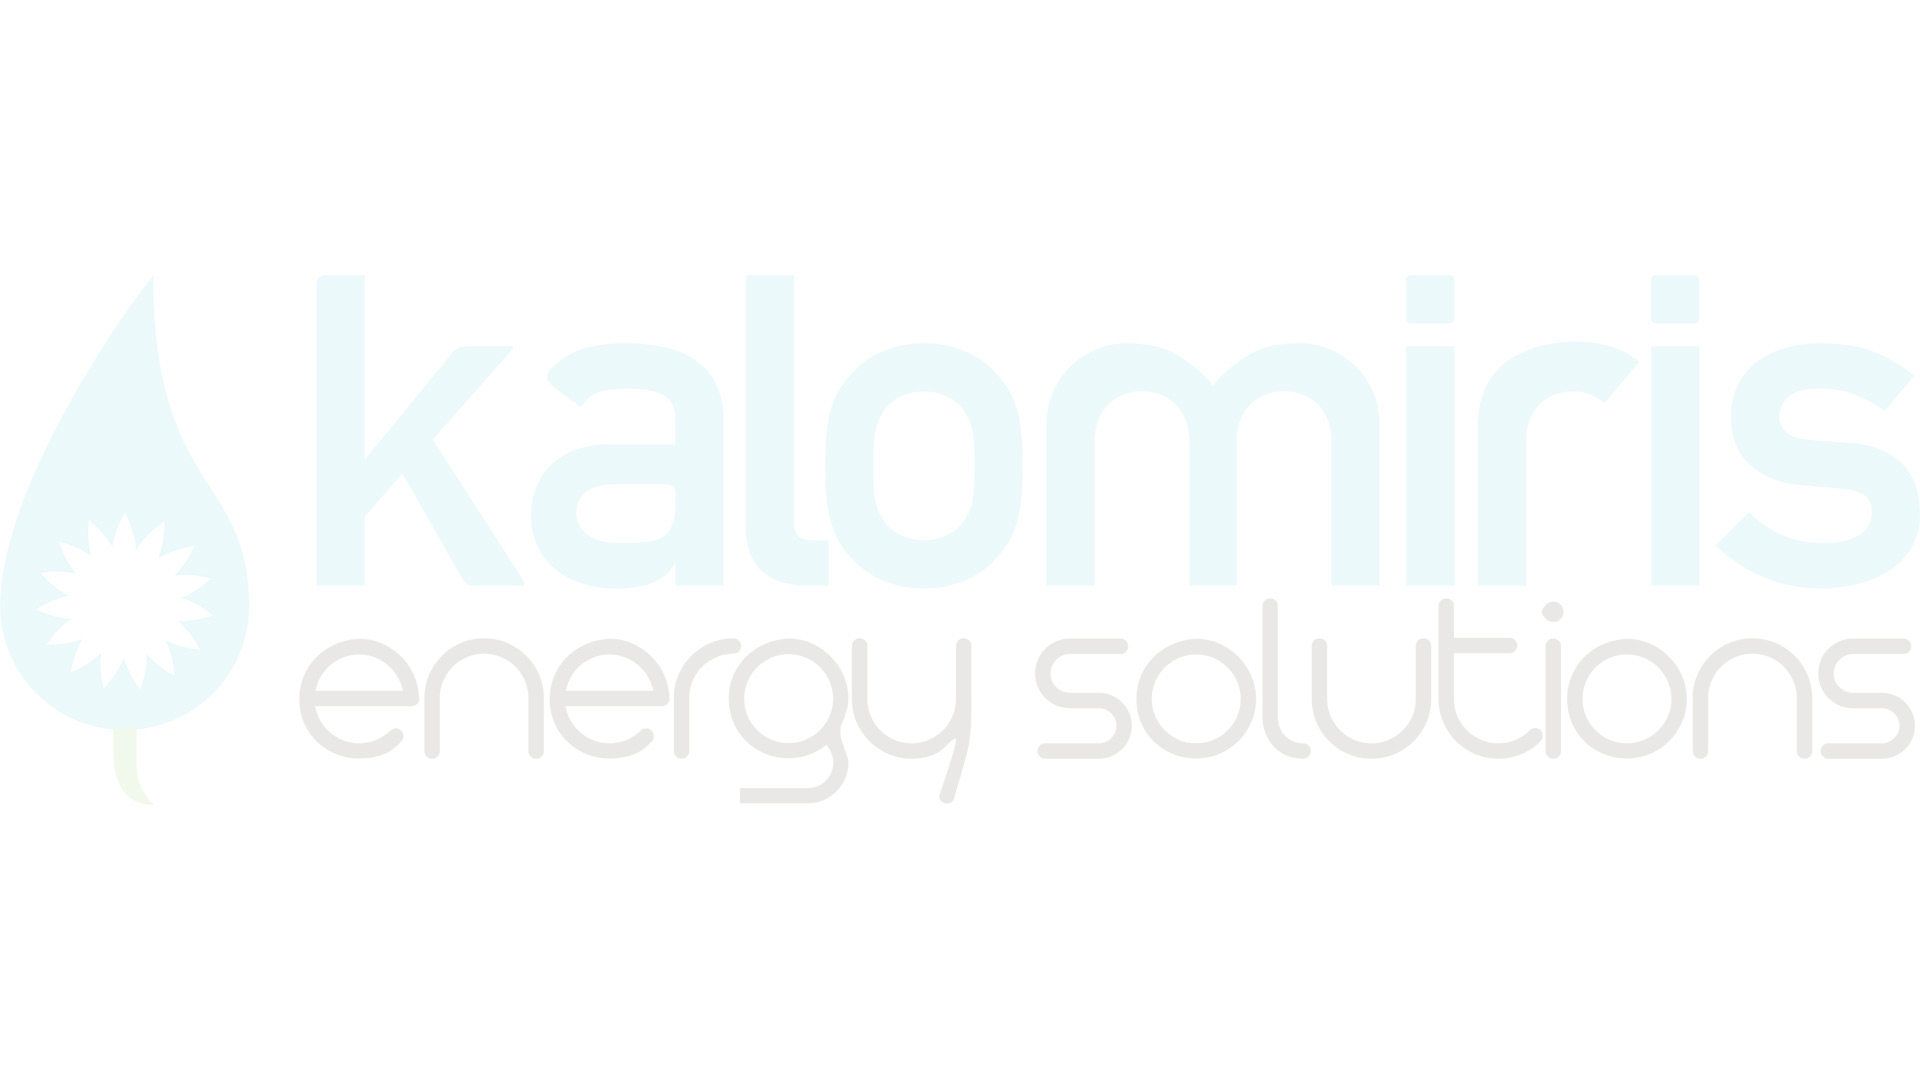 Ceiling Fan CASAFAN CLASSIC ROYAL 103 WE 40.5 (103cm)